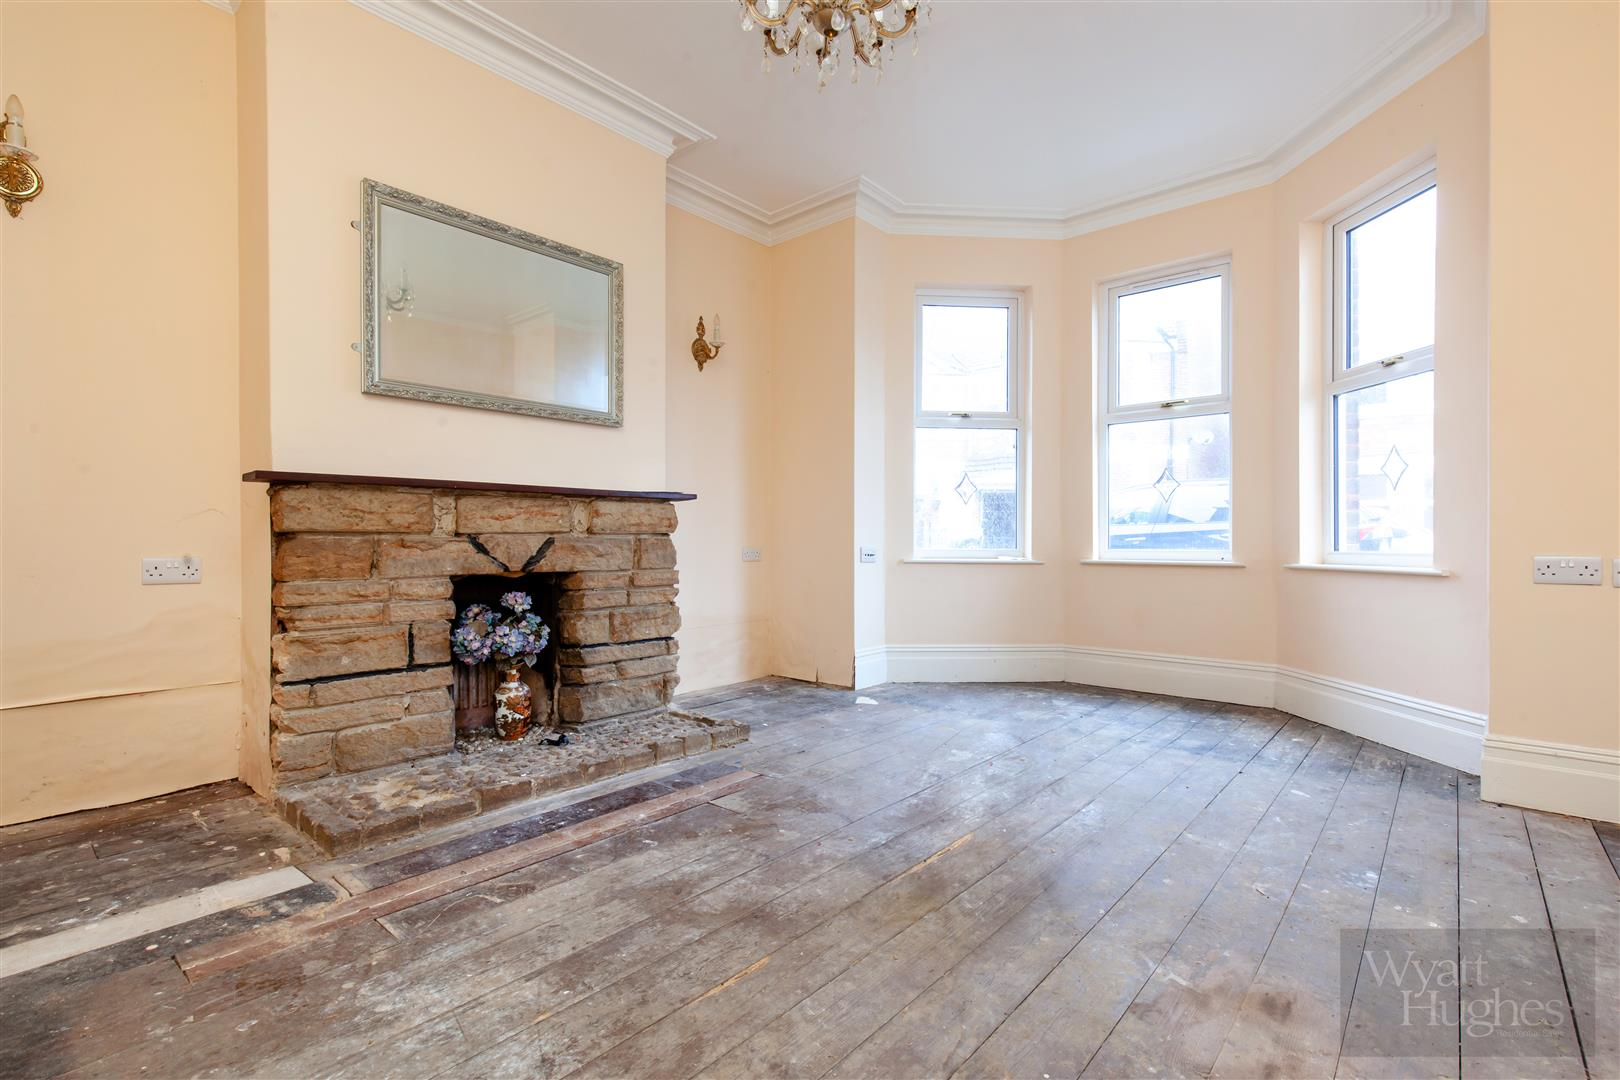 3 bed end-of-terrace-house for sale in Burry Road, St. Leonards-On-Sea  - Property Image 2